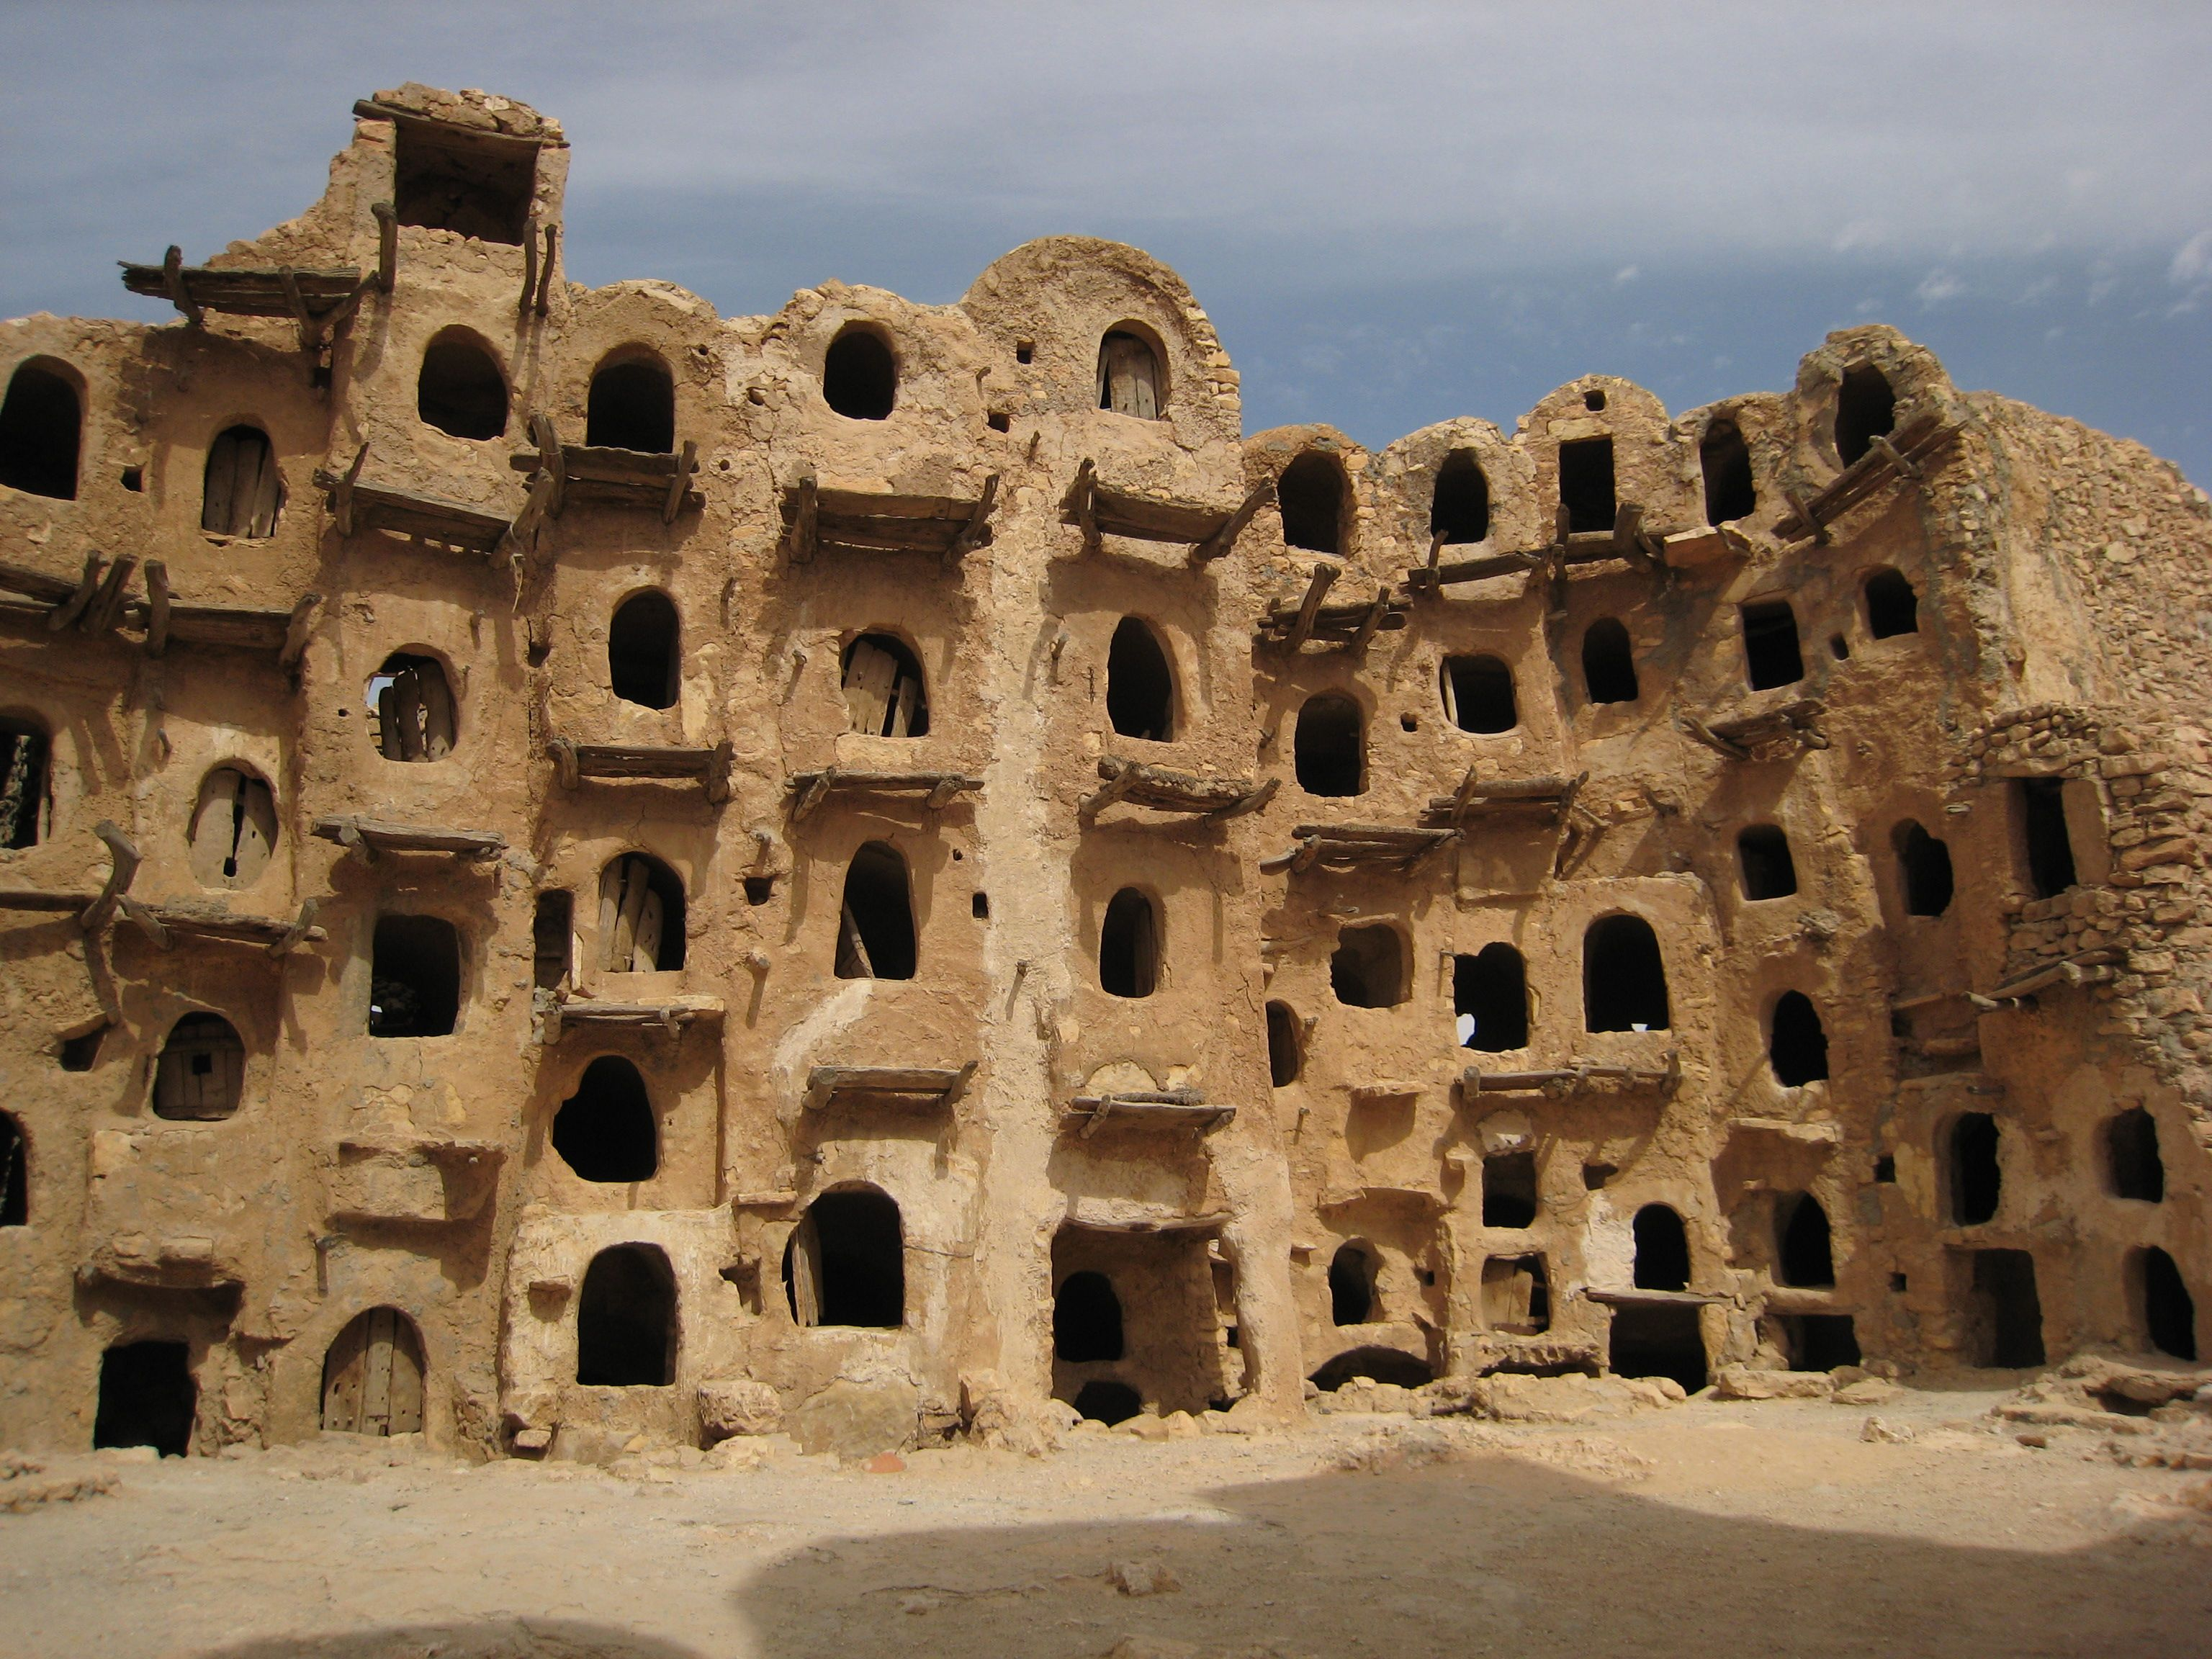 libya archaeology and culture with its fluted corinthian columns